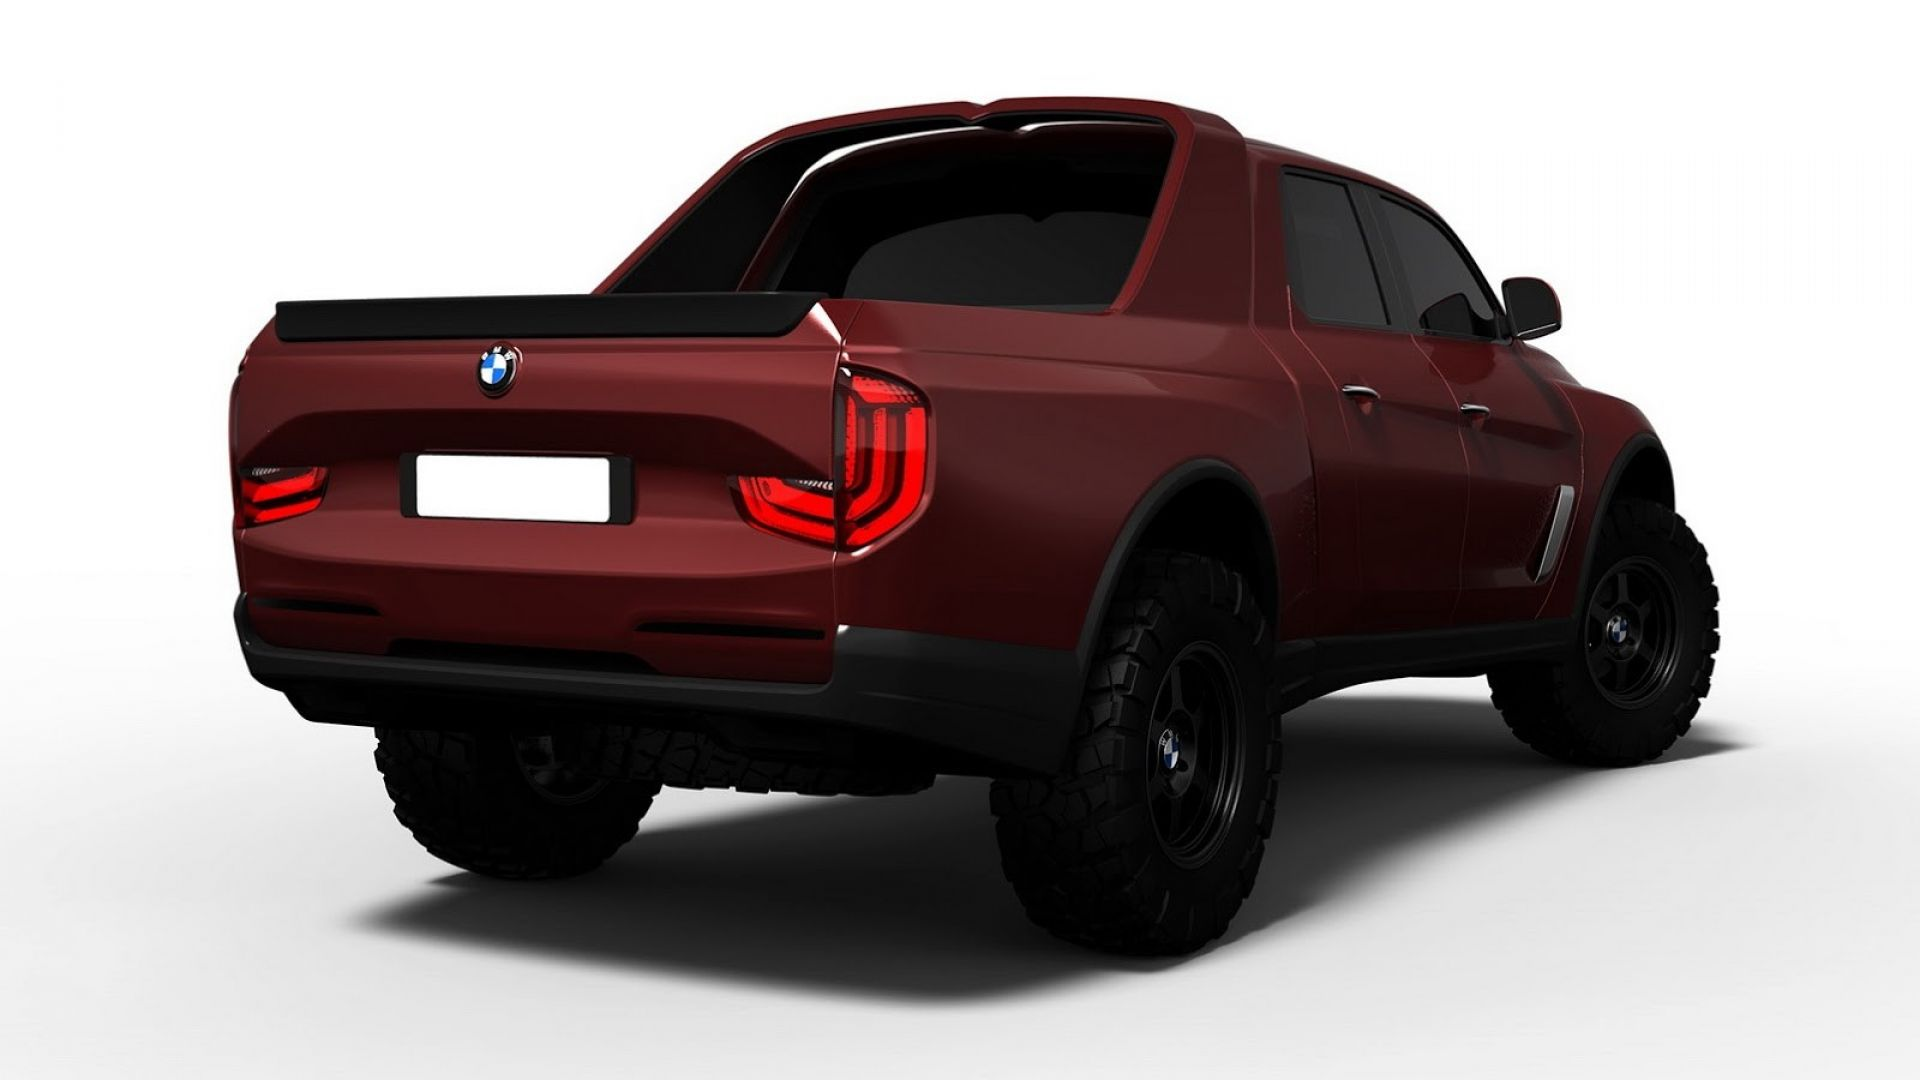 Concept Dalla Bmw X5 Un Pick Up Per Contrastare Mercedes